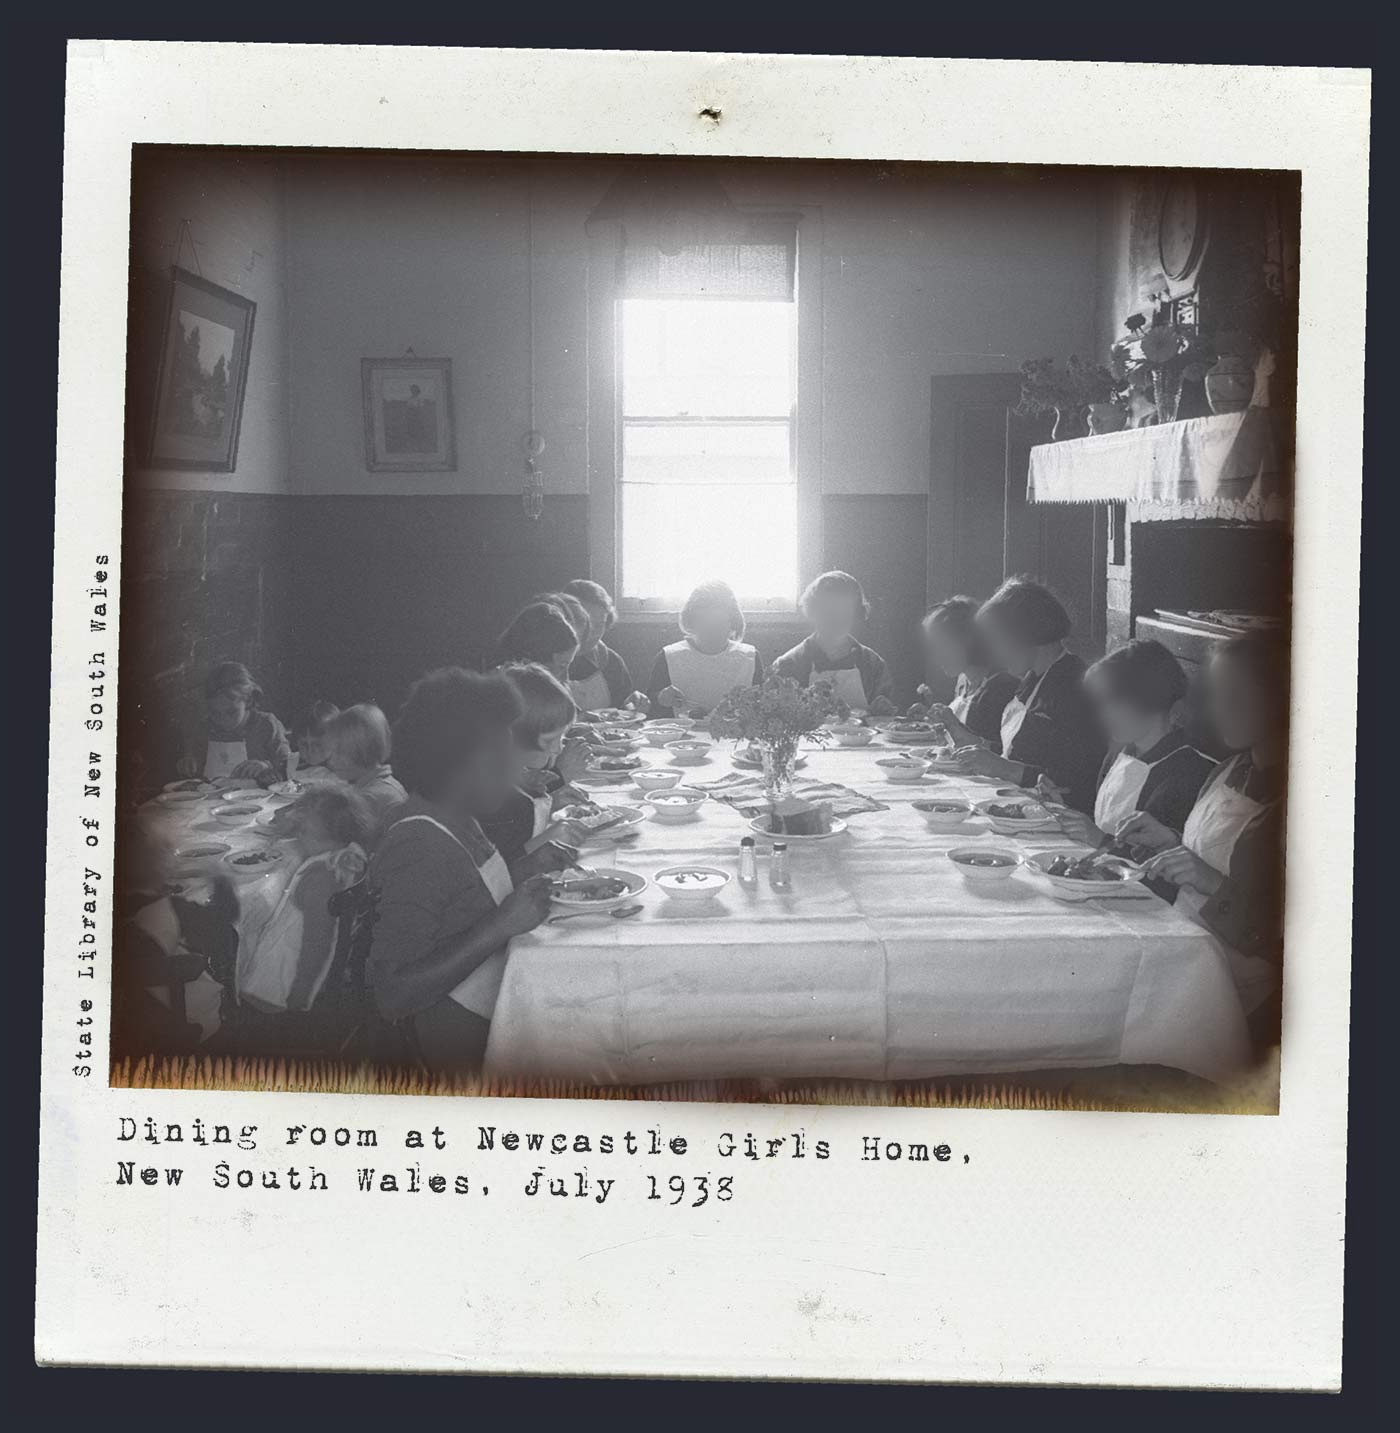 An image of a black and white Polaroid photo of girls sitting around a table eating a meal. Bright light shines through the window at the end of the table. Typewritten text below reads 'Dining room at Newcastle Girls Home, New South Wales, July 1938'. 'State Library of New South Wales' is typed along the left side. - click to view larger image